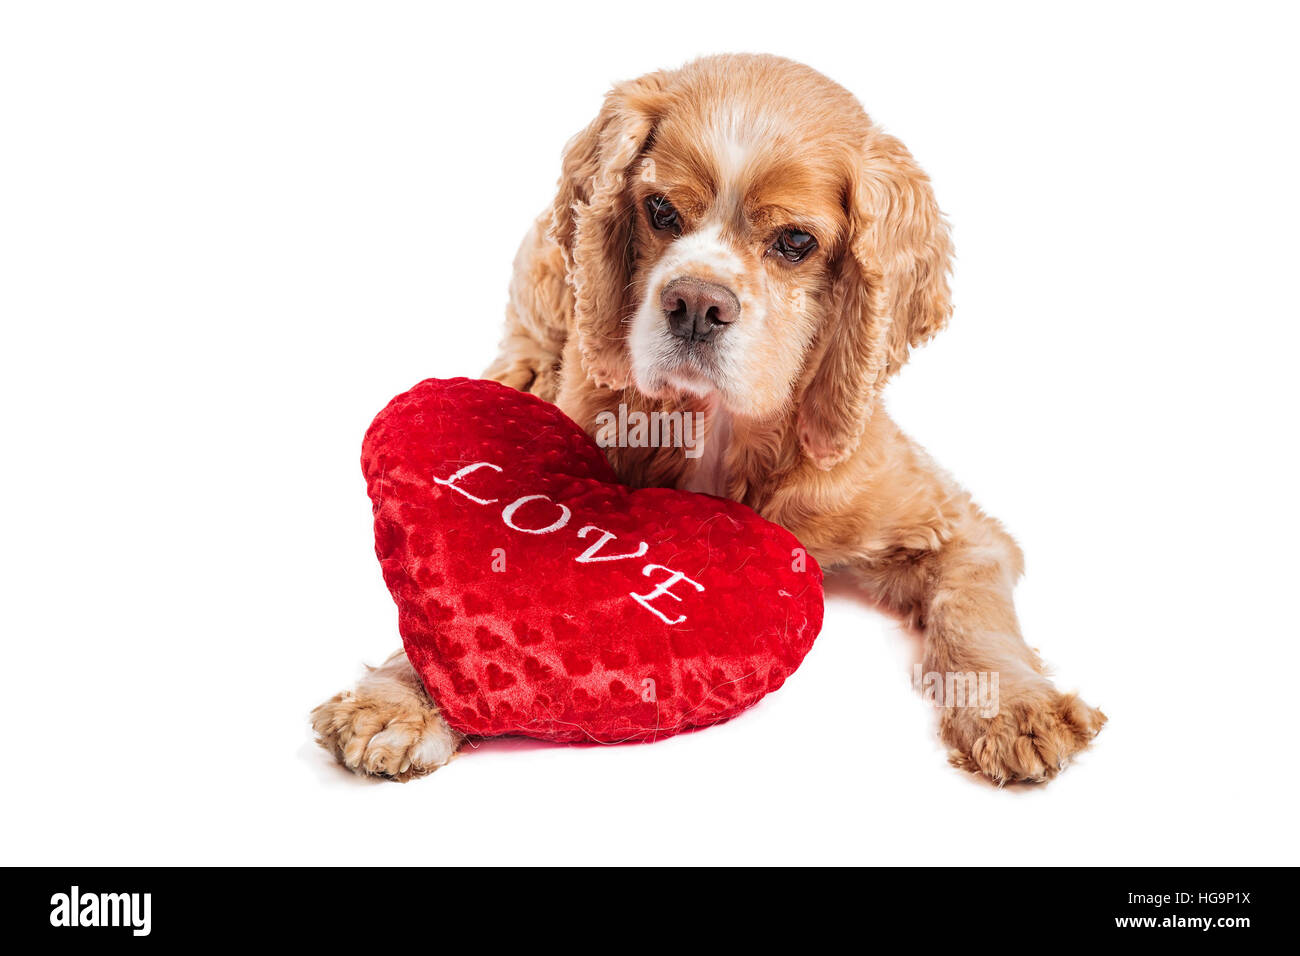 Cocker spaniel dog  with a love pillow, portrait on white. - Stock Image